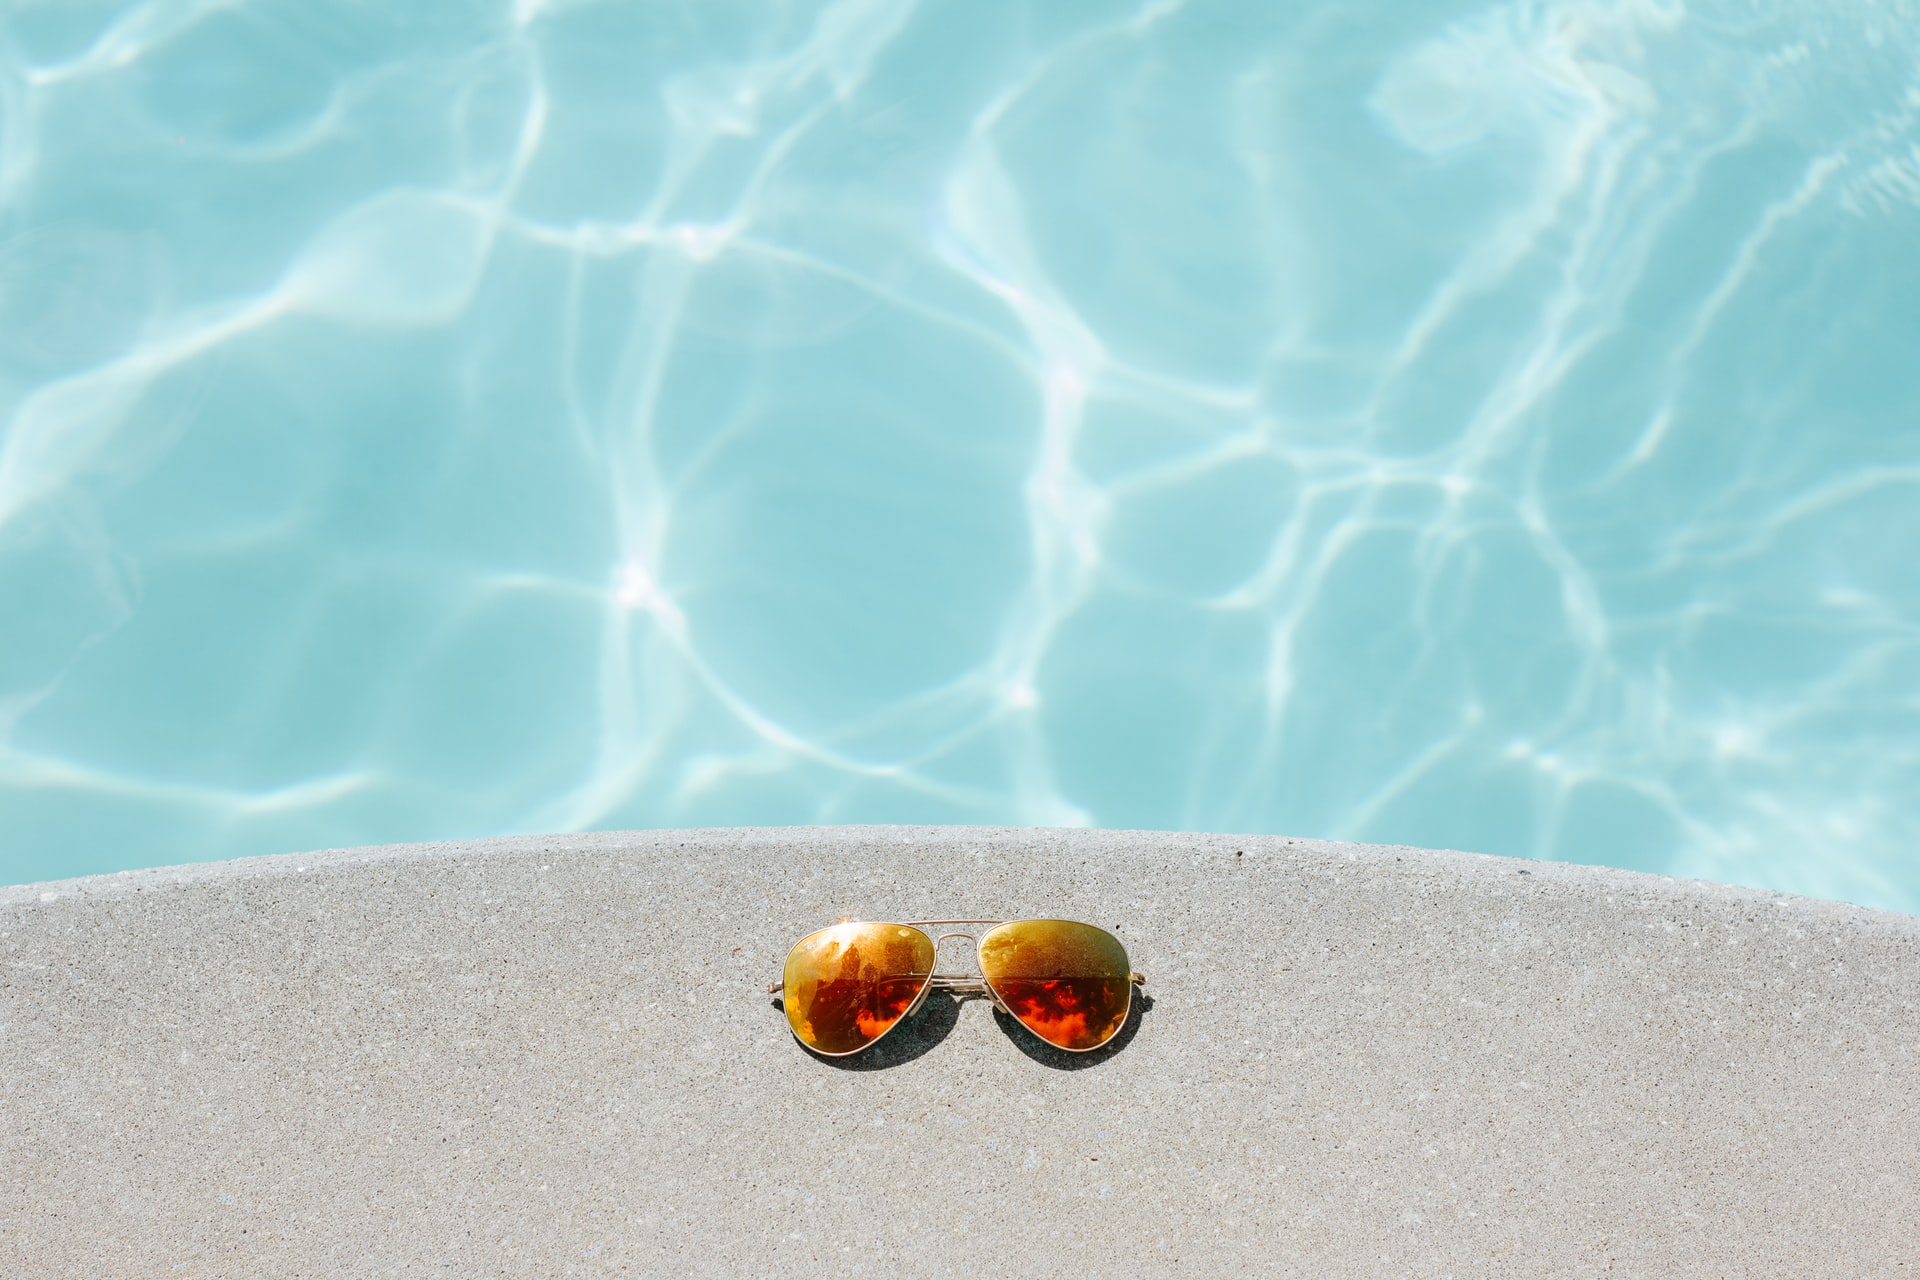 Pool Maintenance Tips for New Owners